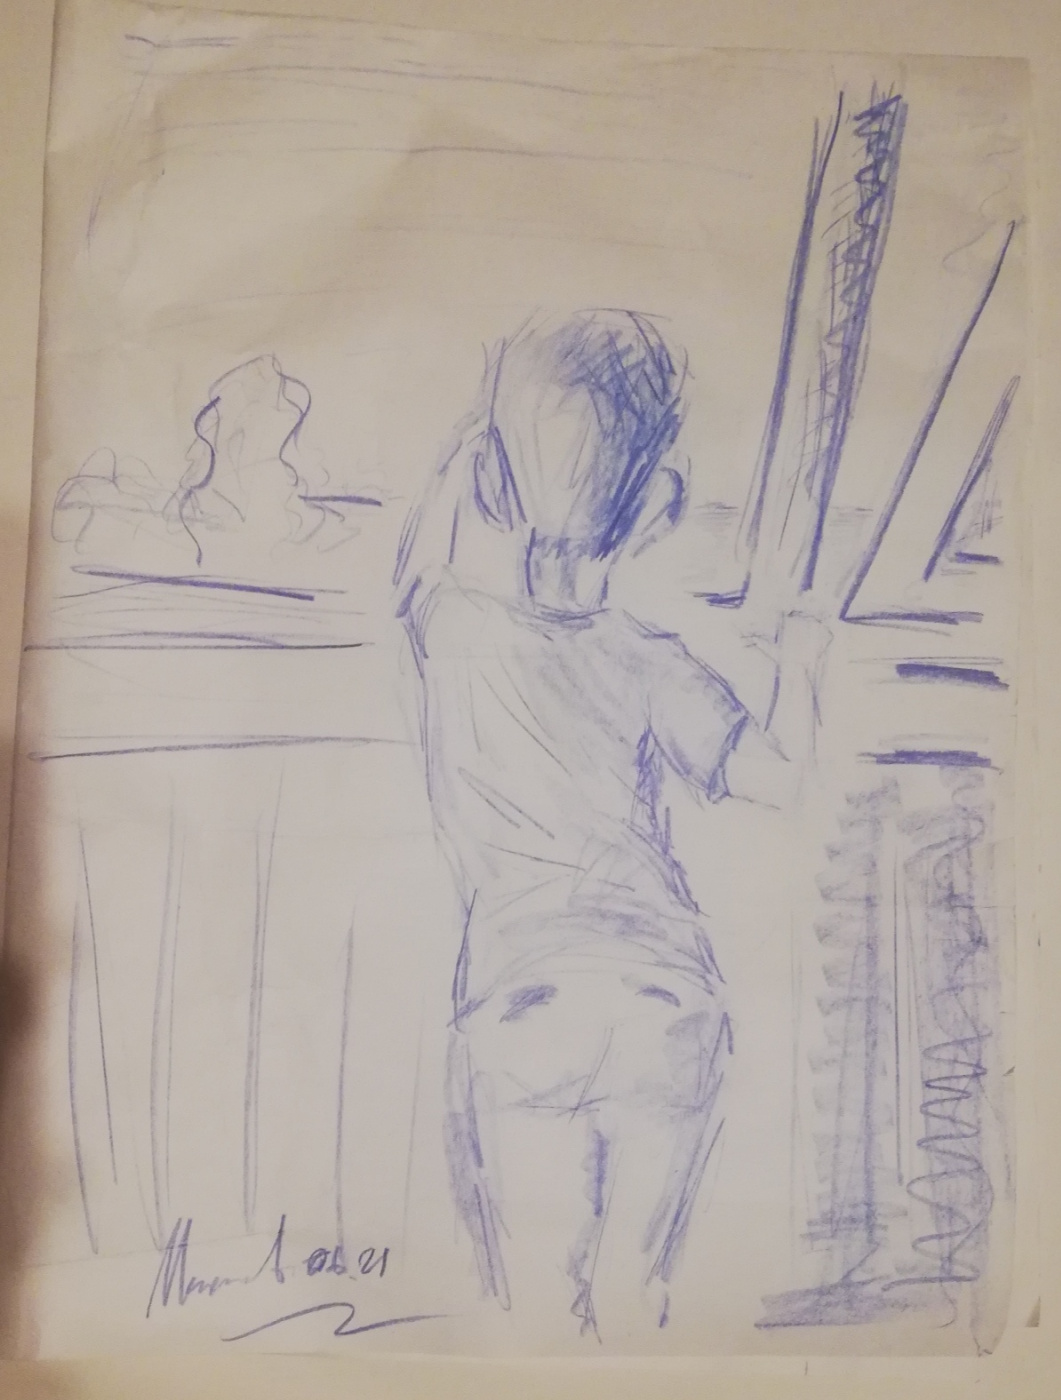 Andrew Markoff. Sketch of the greeter